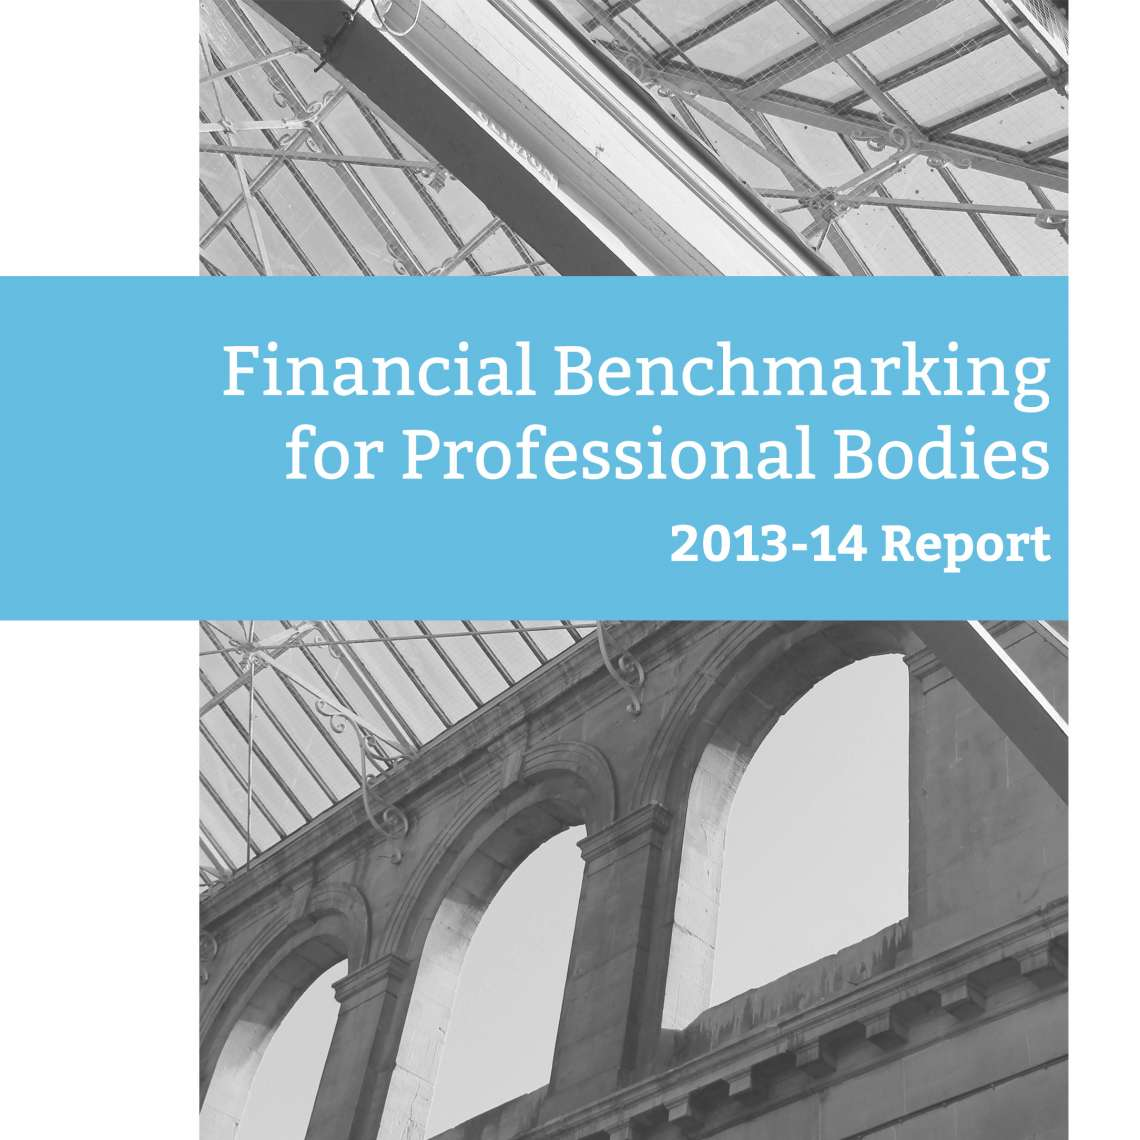 Report: Financial Benchmarking for Professional Bodies: 2013-14